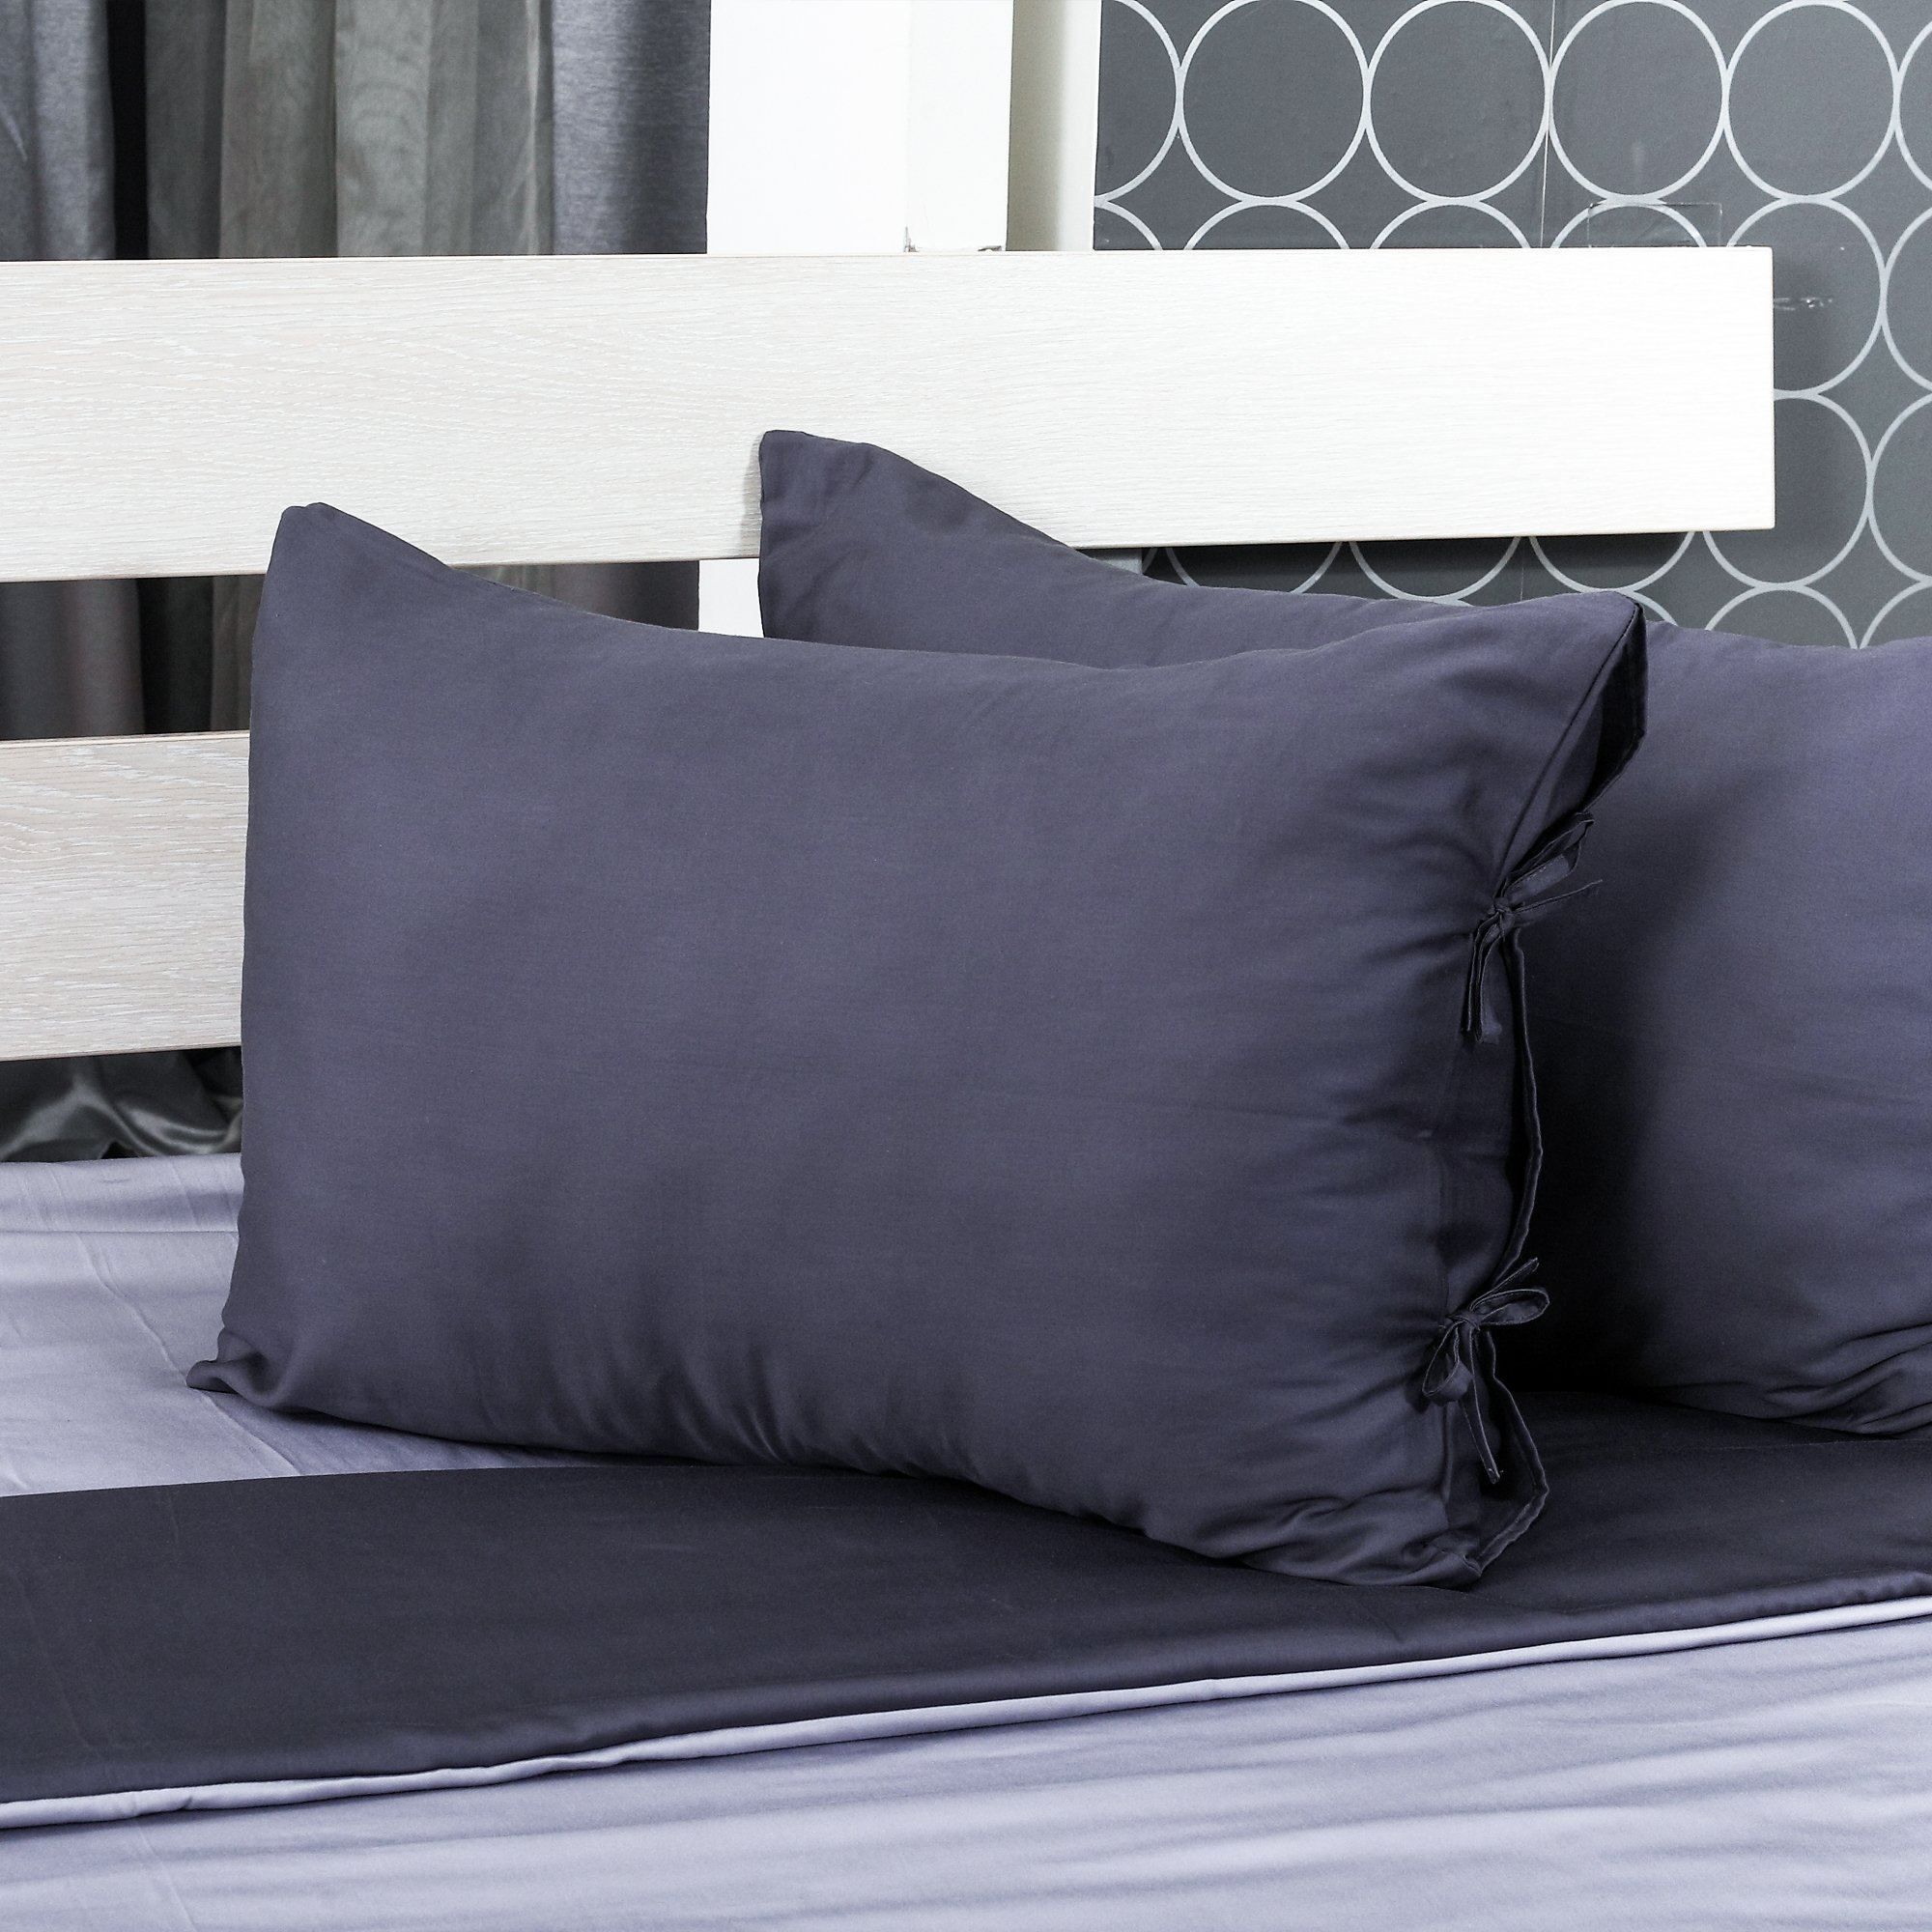 Cloudy Hugs Bed Linen Set – 100% Natural Textile: Sateen – & Comfortable for Sweet Dreams - 5 pc Set -Queen, Dark Gray/Light Gray by Cloudy Hugs (Image #8)